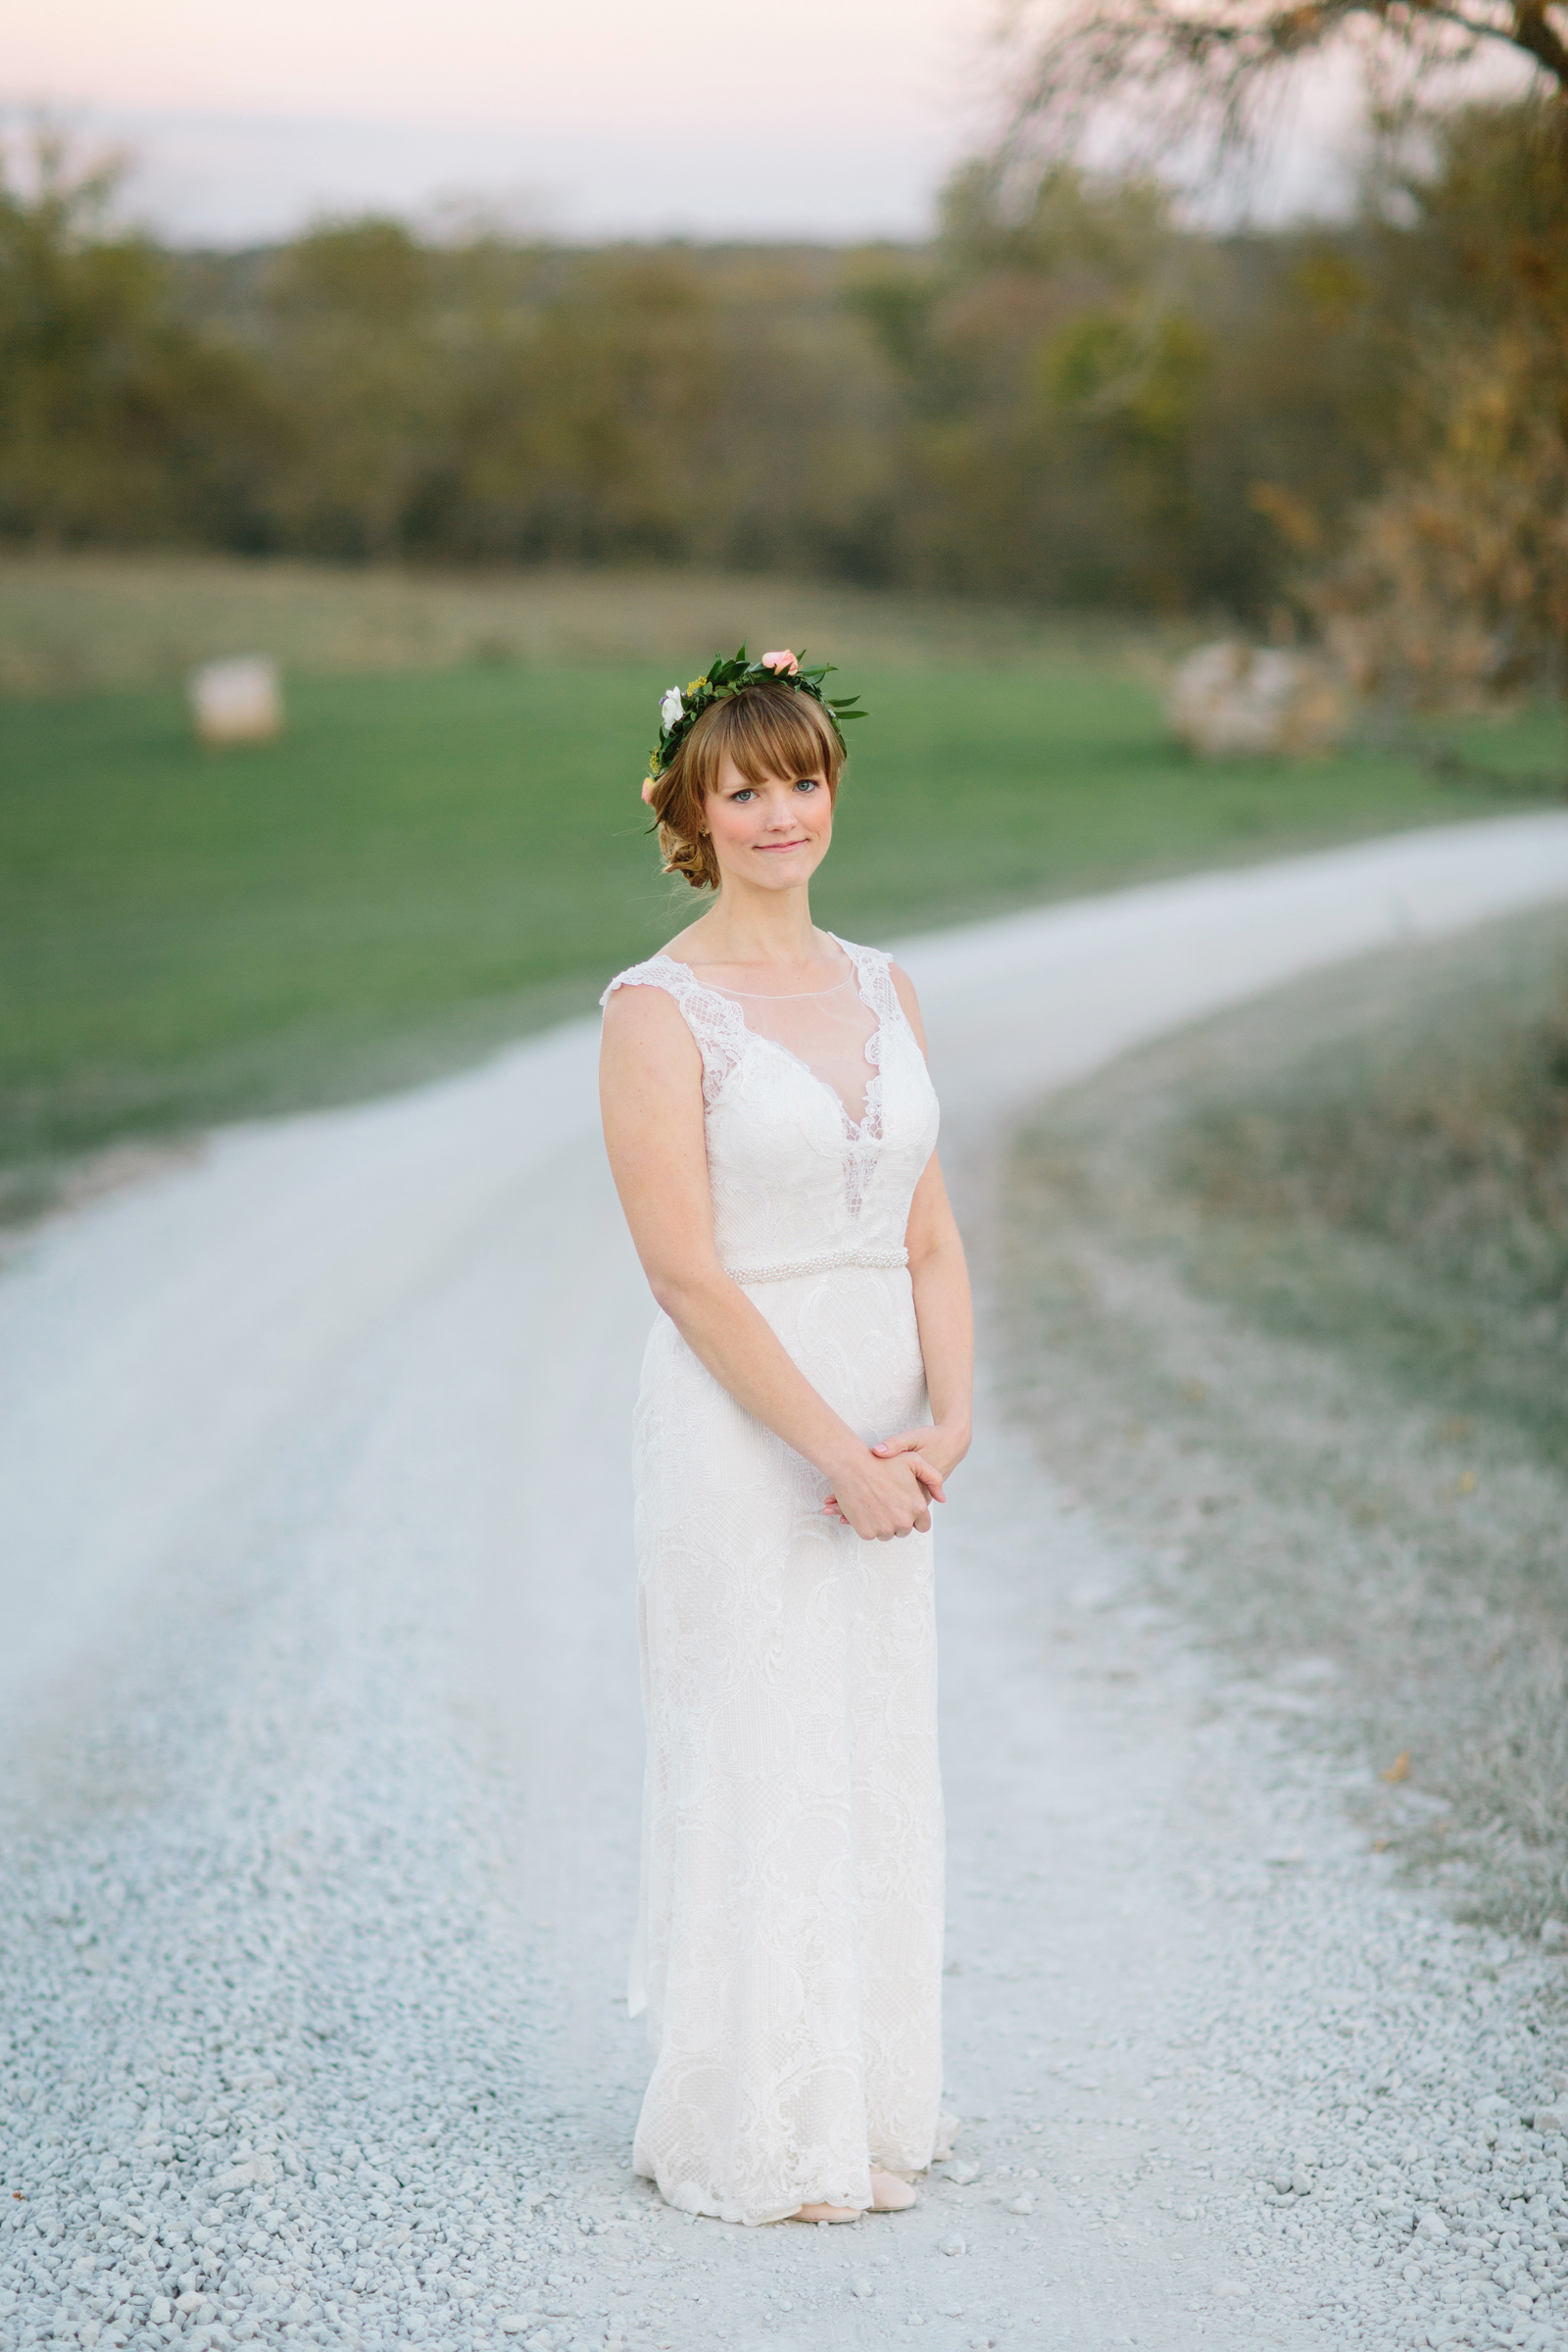 Weston Red Barn Farm Wedding. Meredith. Anna Jaye Photography